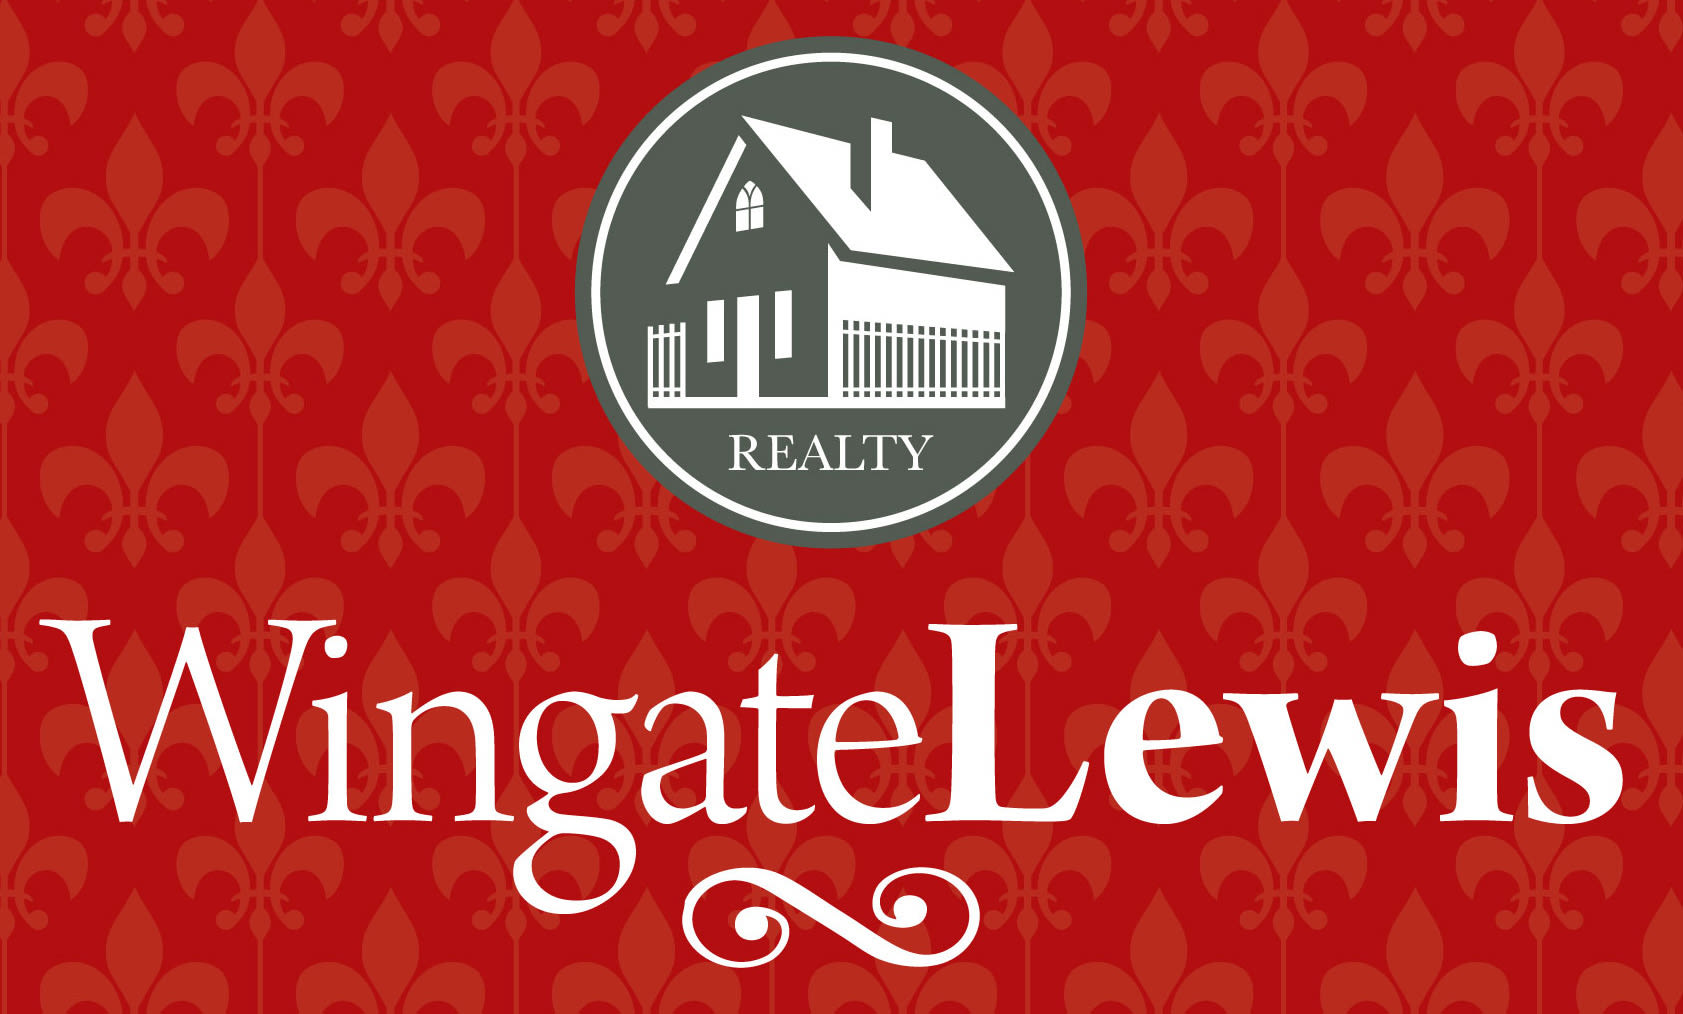 Wingate Lewis Realty